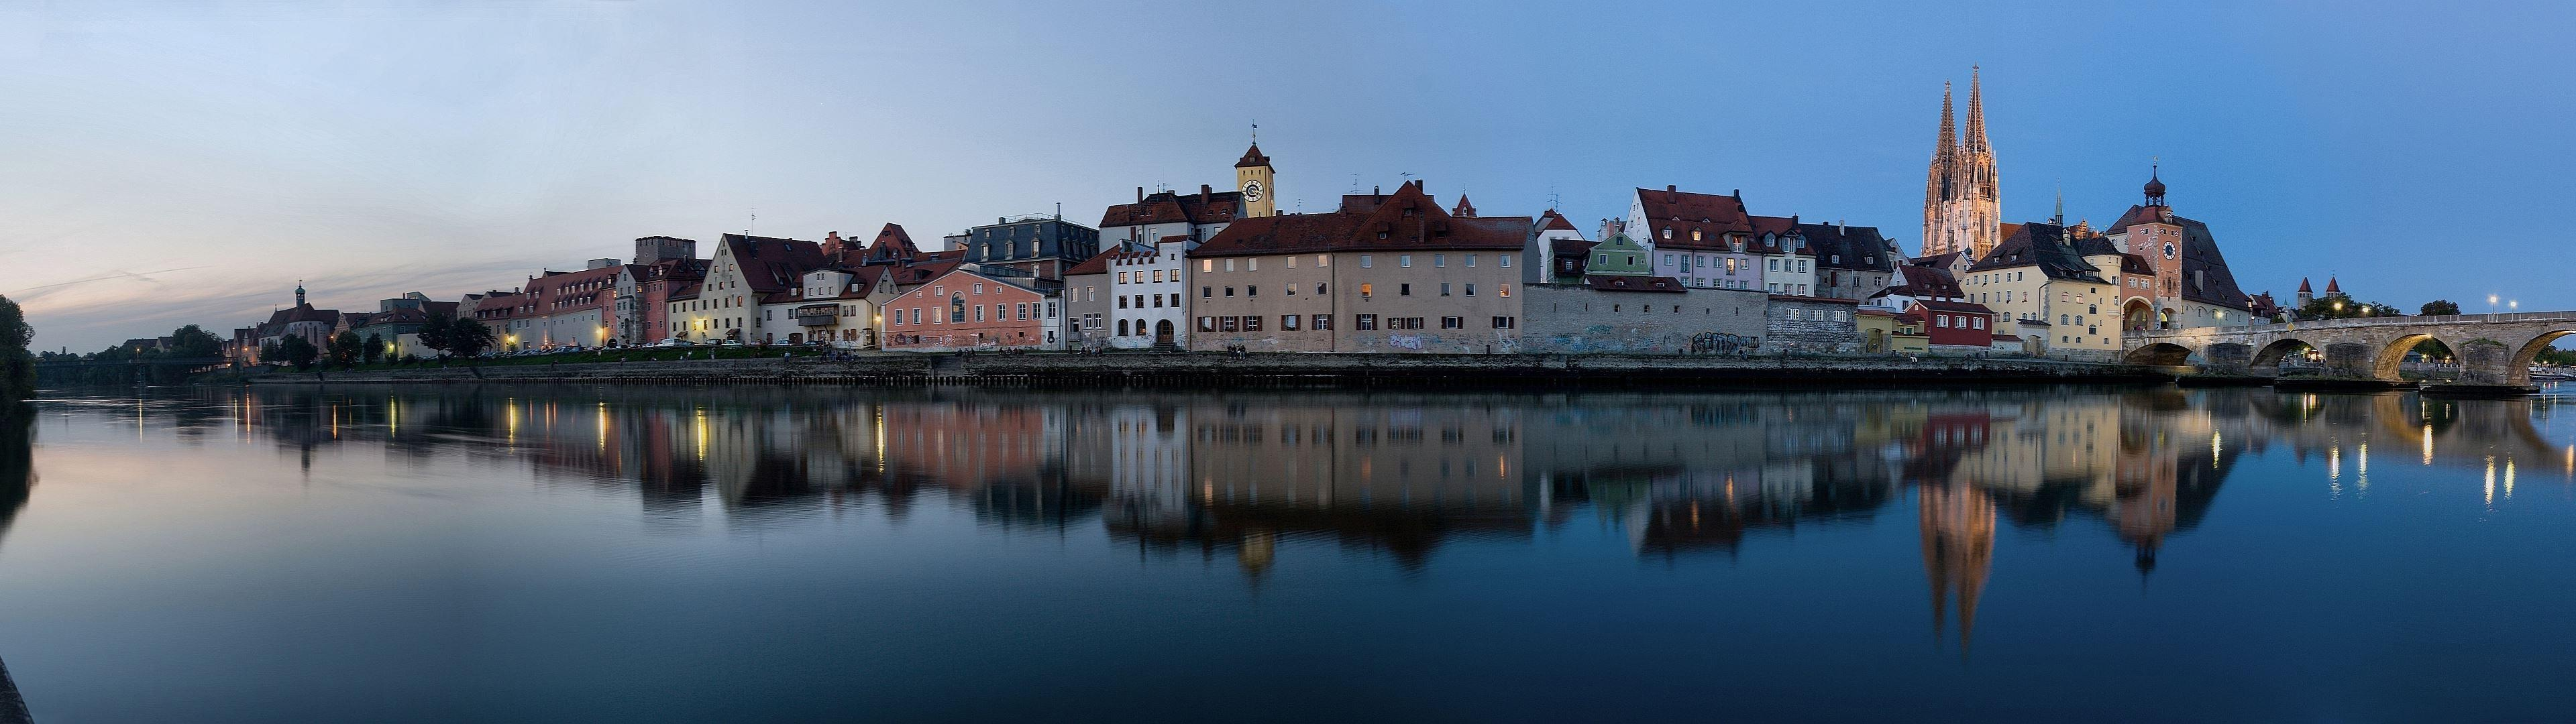 Regensburg, Germany, City, Reflection, River, Sunset, Multiple ...